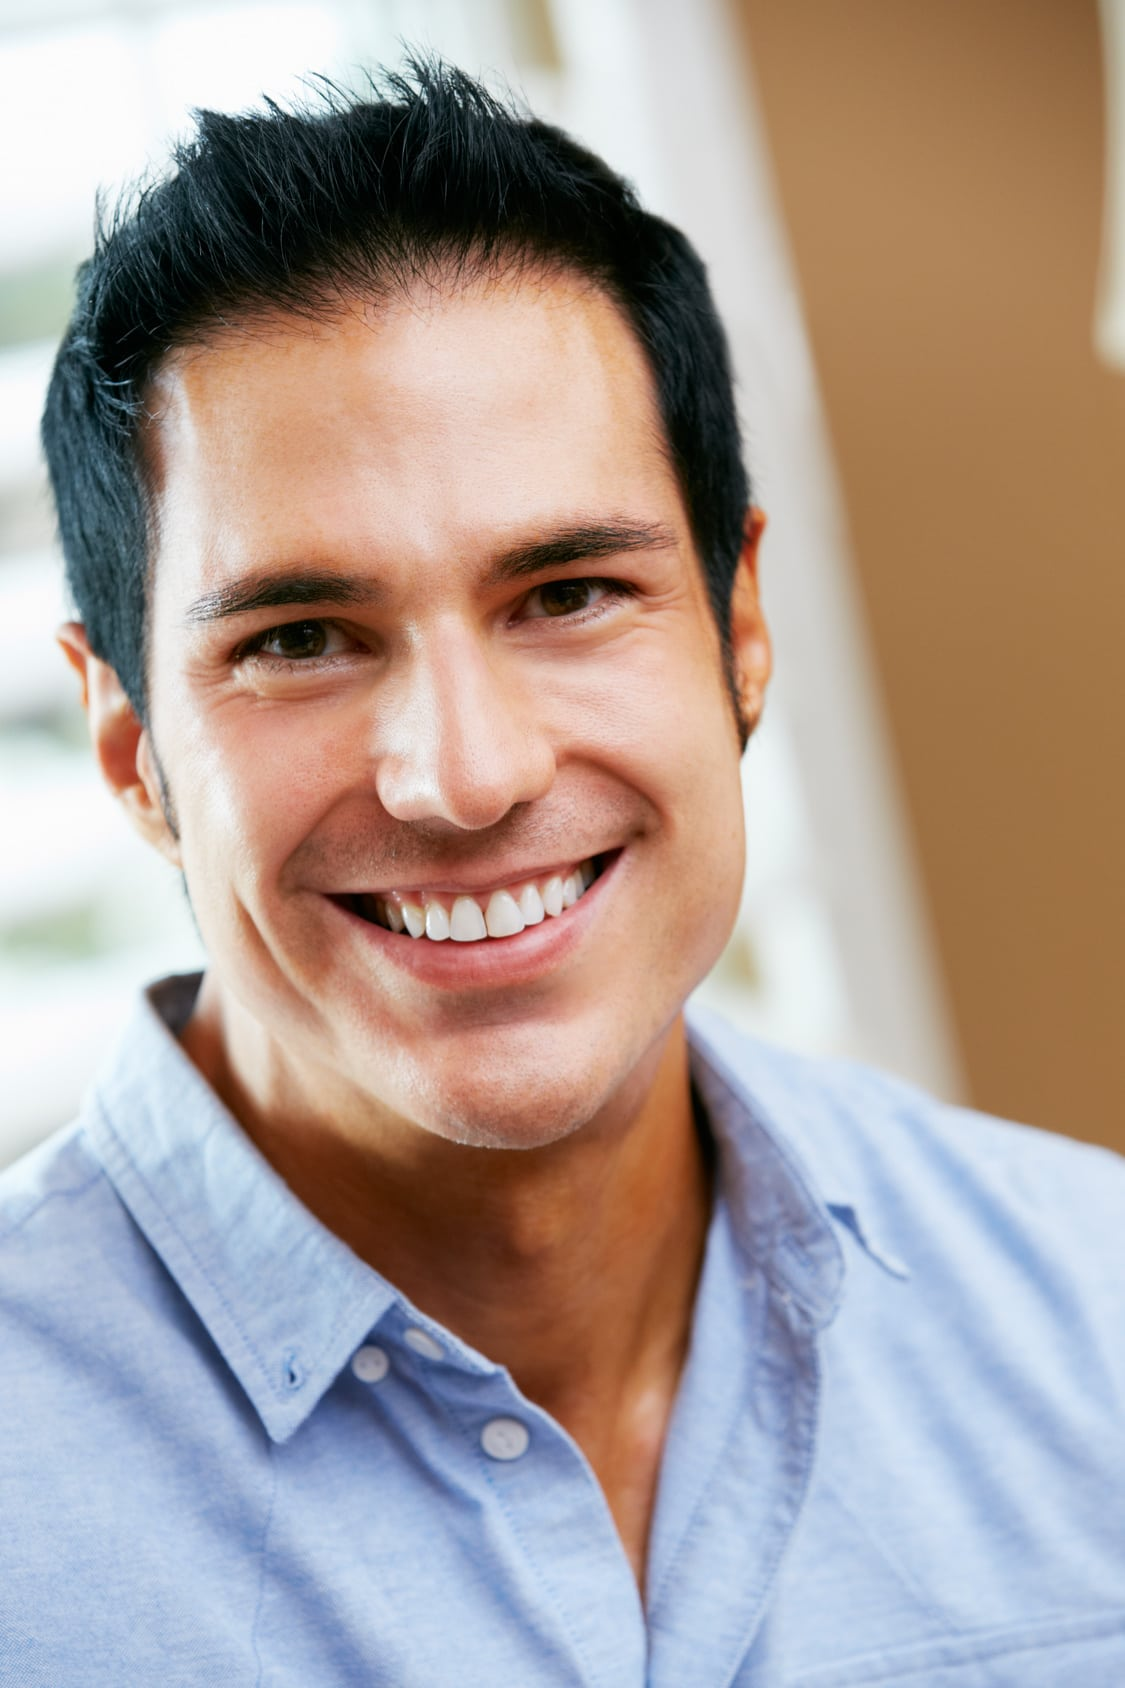 Dr. Michael Eisemann offers facelifts for men - for those who want a younger, more energetic looking face - Houston, Sugar Land Facelift Surgeon